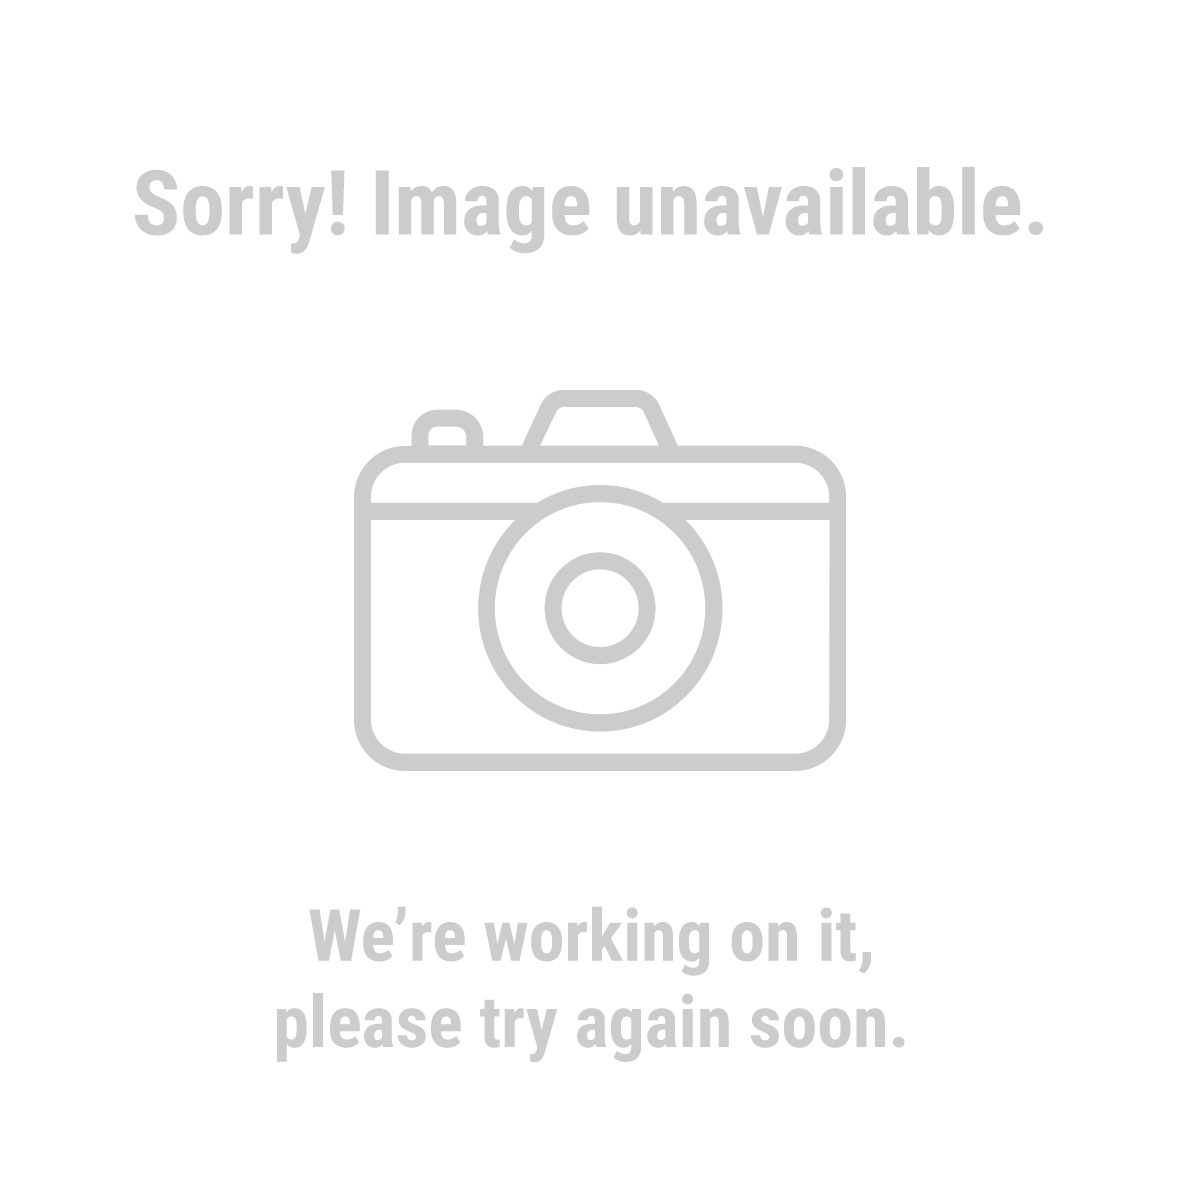 Green Harbor Freight Portable Garage : Harbor freight portable garage bing images